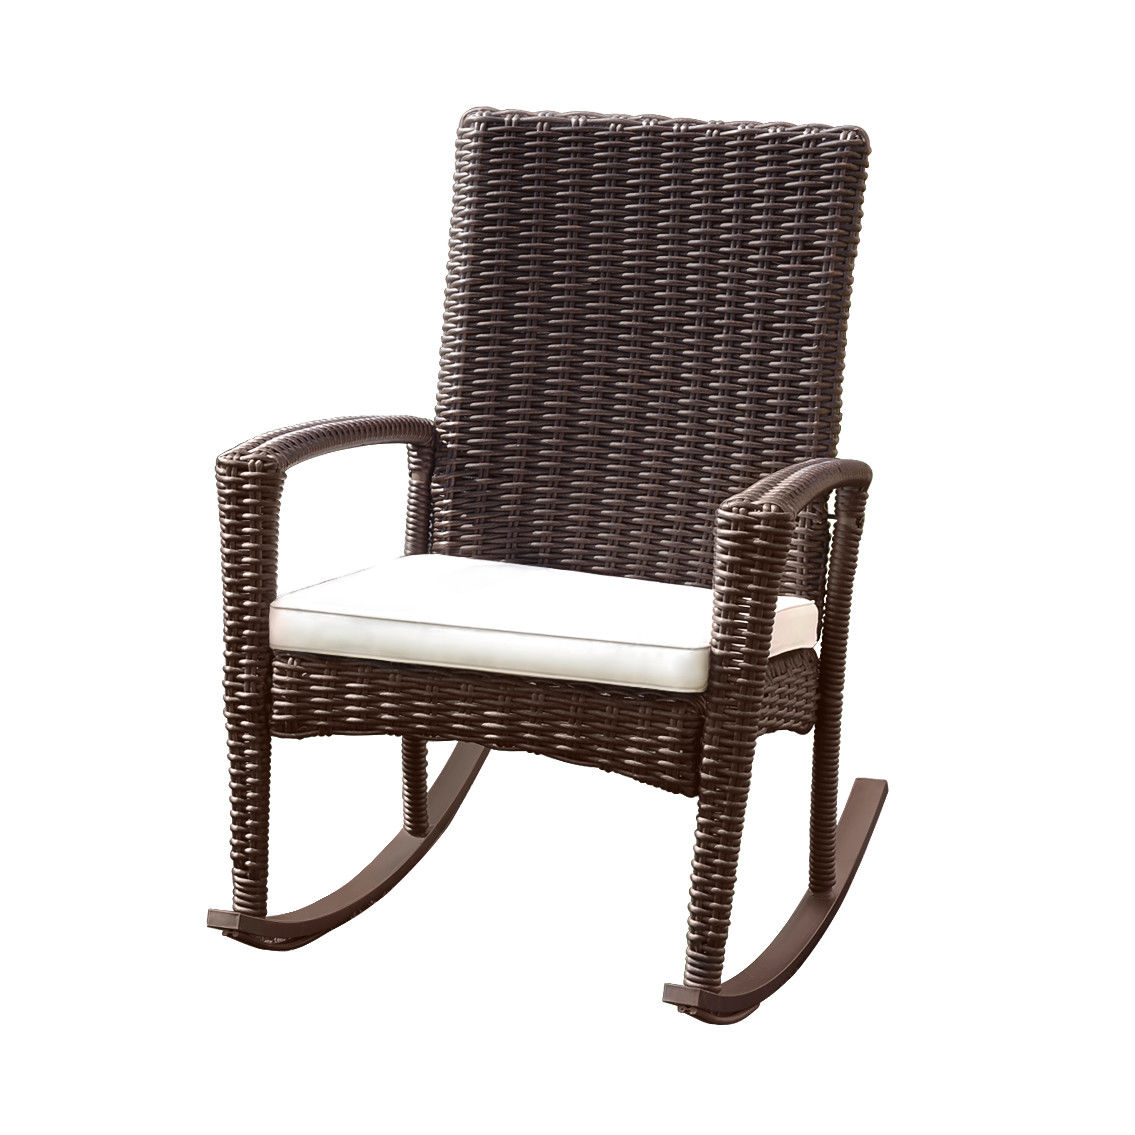 Gymax 3PC Patio Rattan Wicker Furniture Set Cushioned Outdoor Garden - image 5 of 8